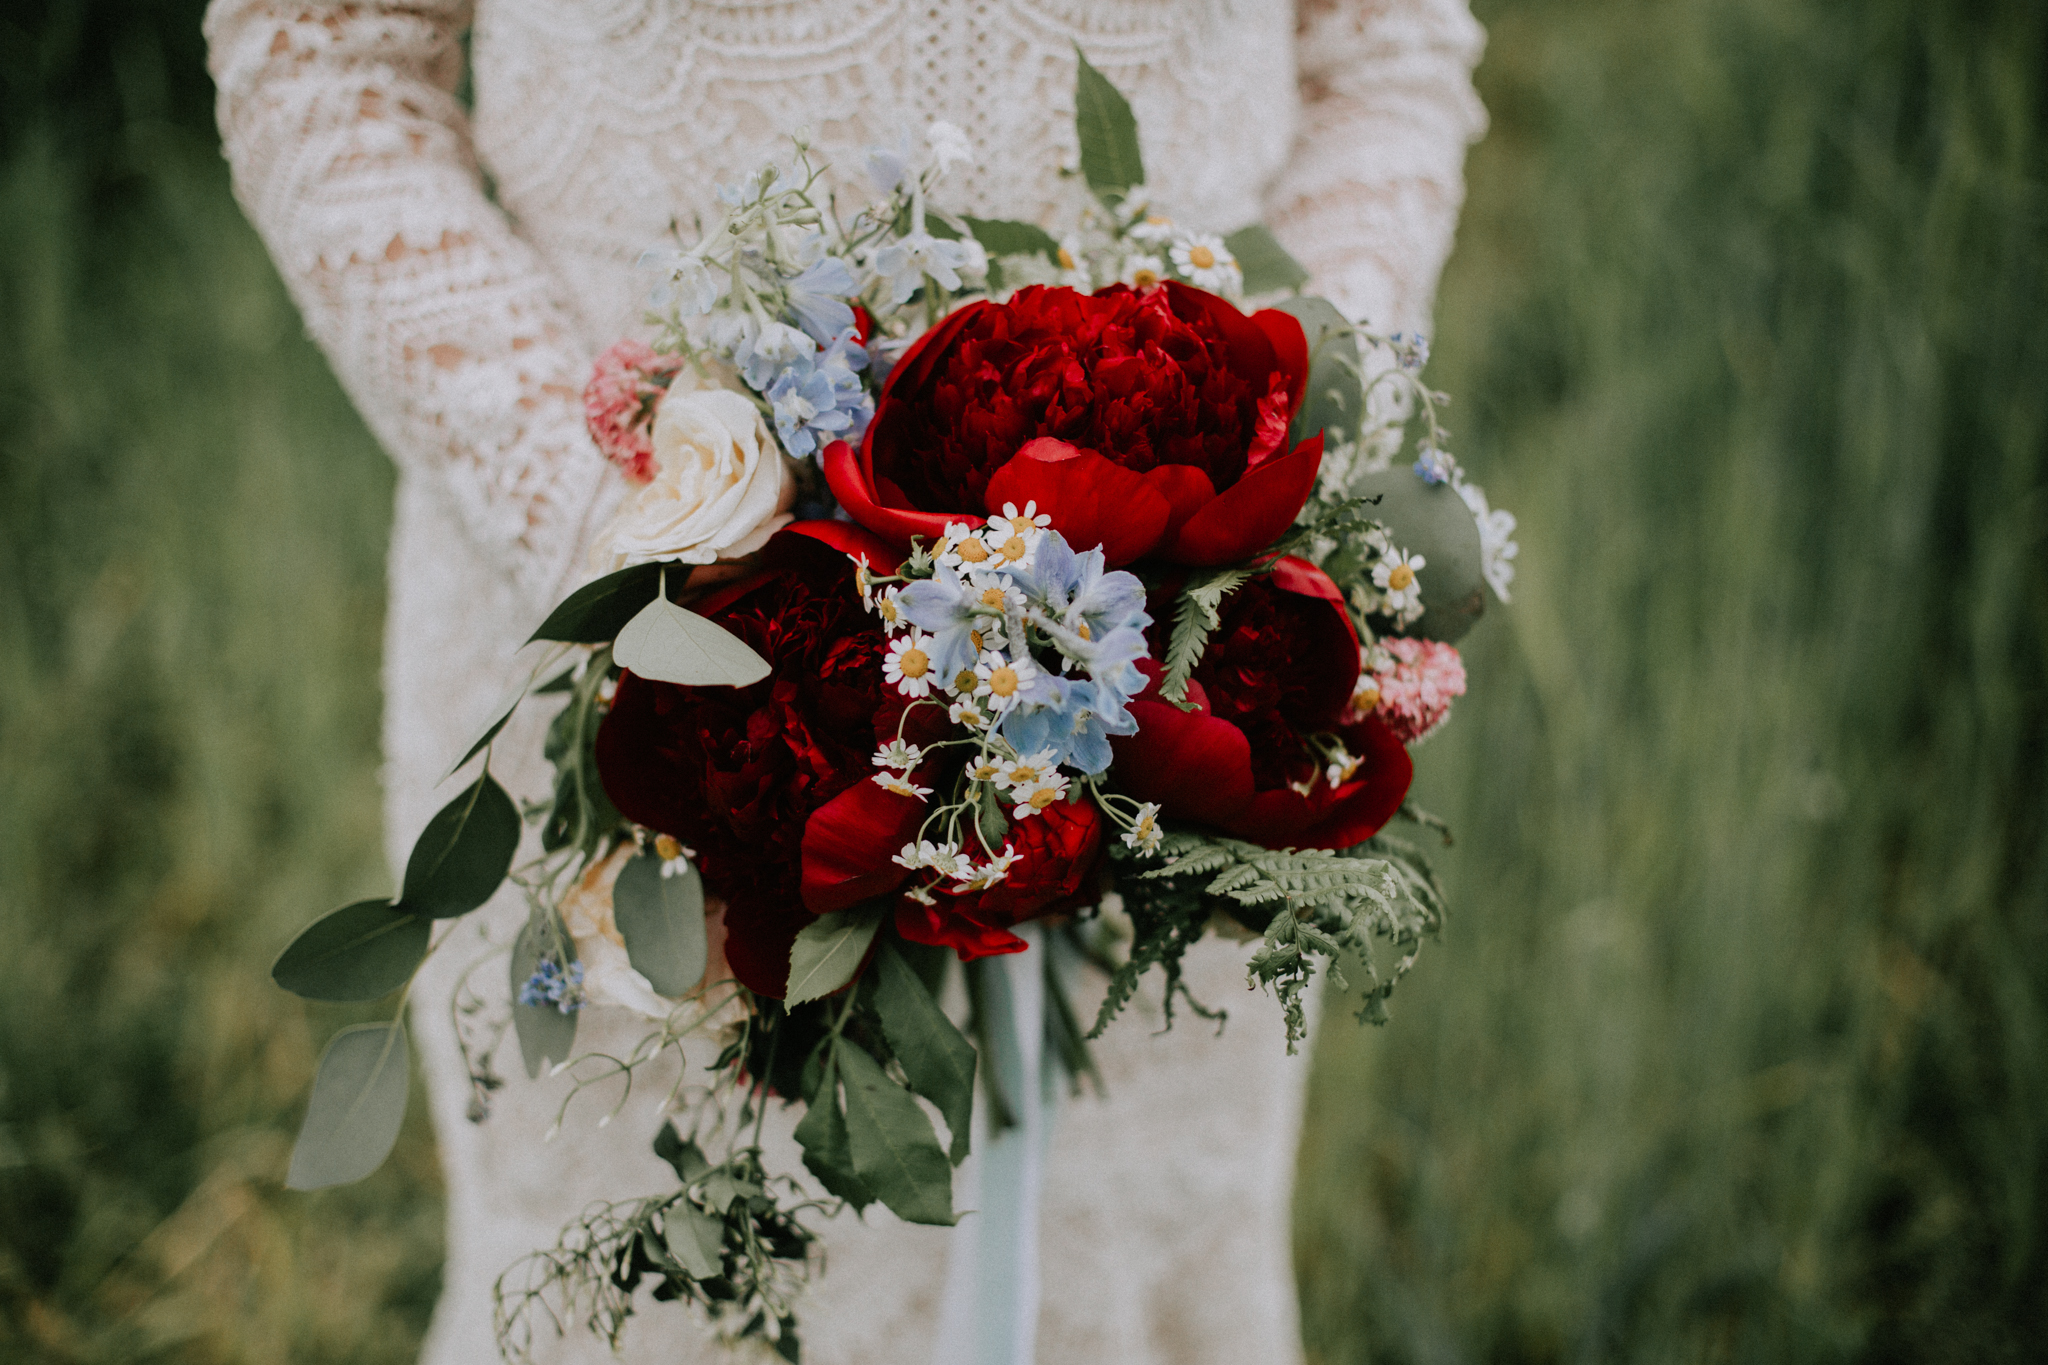 Close up the bridal wedding bouquet